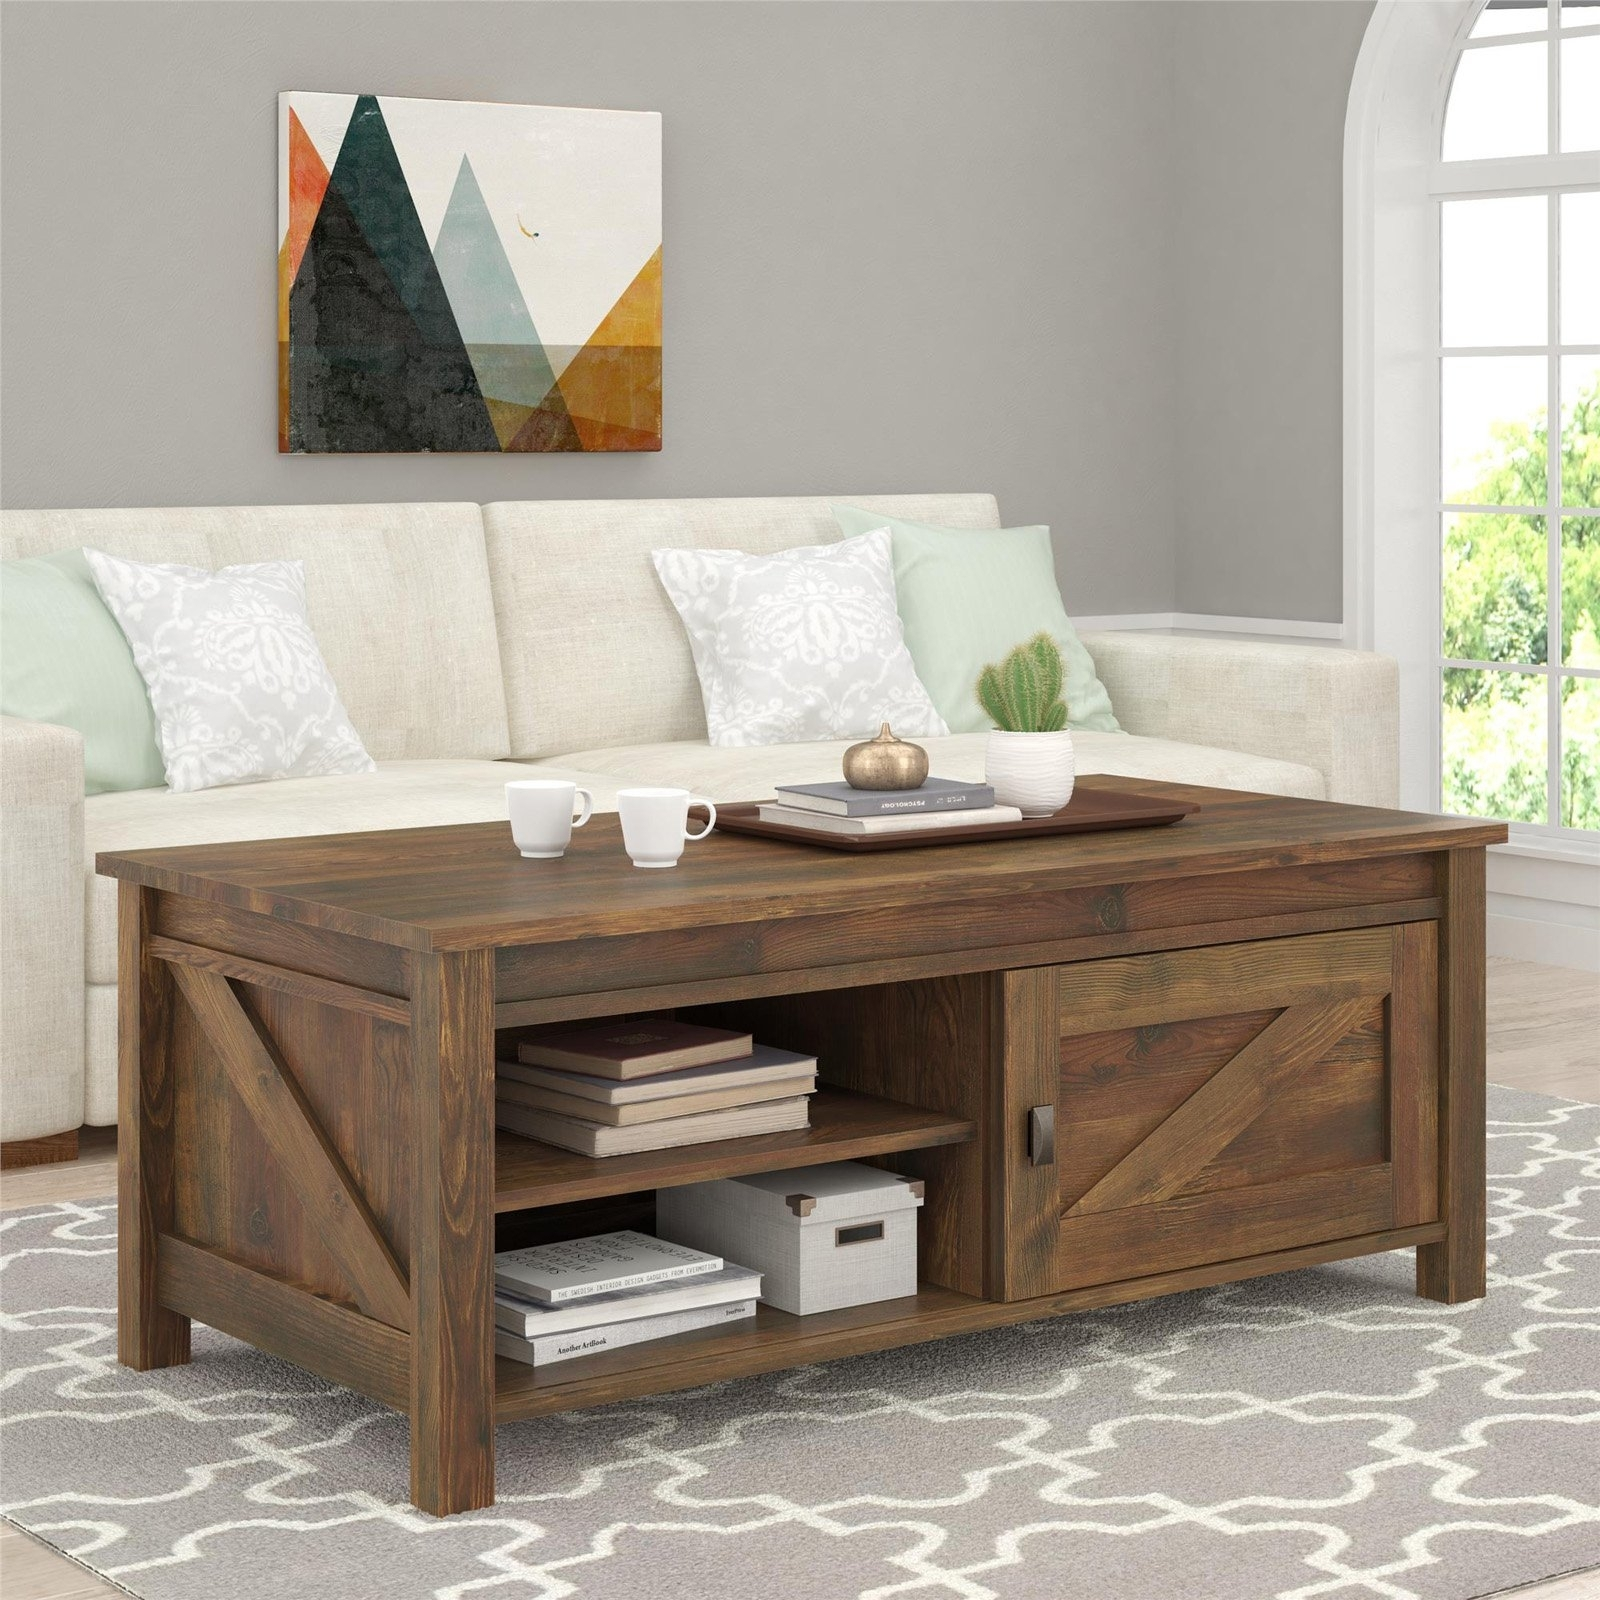 Altra Farmington Coffee Table - Century Barn Pine - Walmart within Element Coffee Tables (Image 2 of 30)